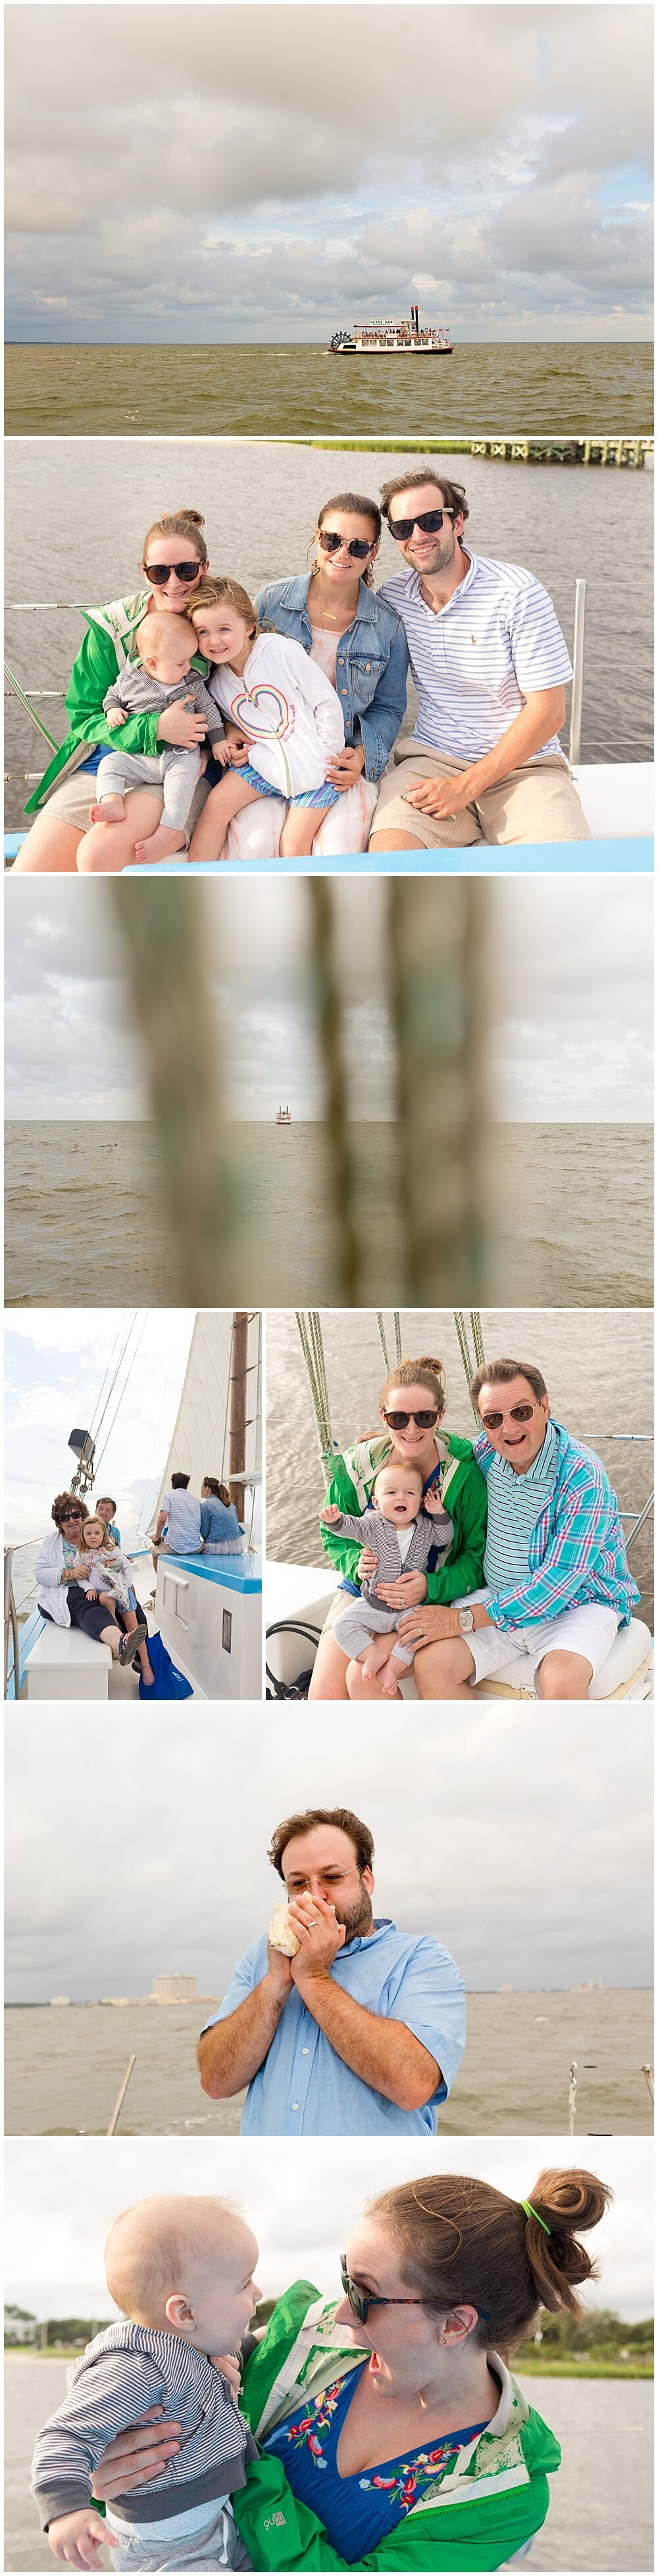 family fun on Biloxi Schooner Cruise - Mississippi Coast tourism